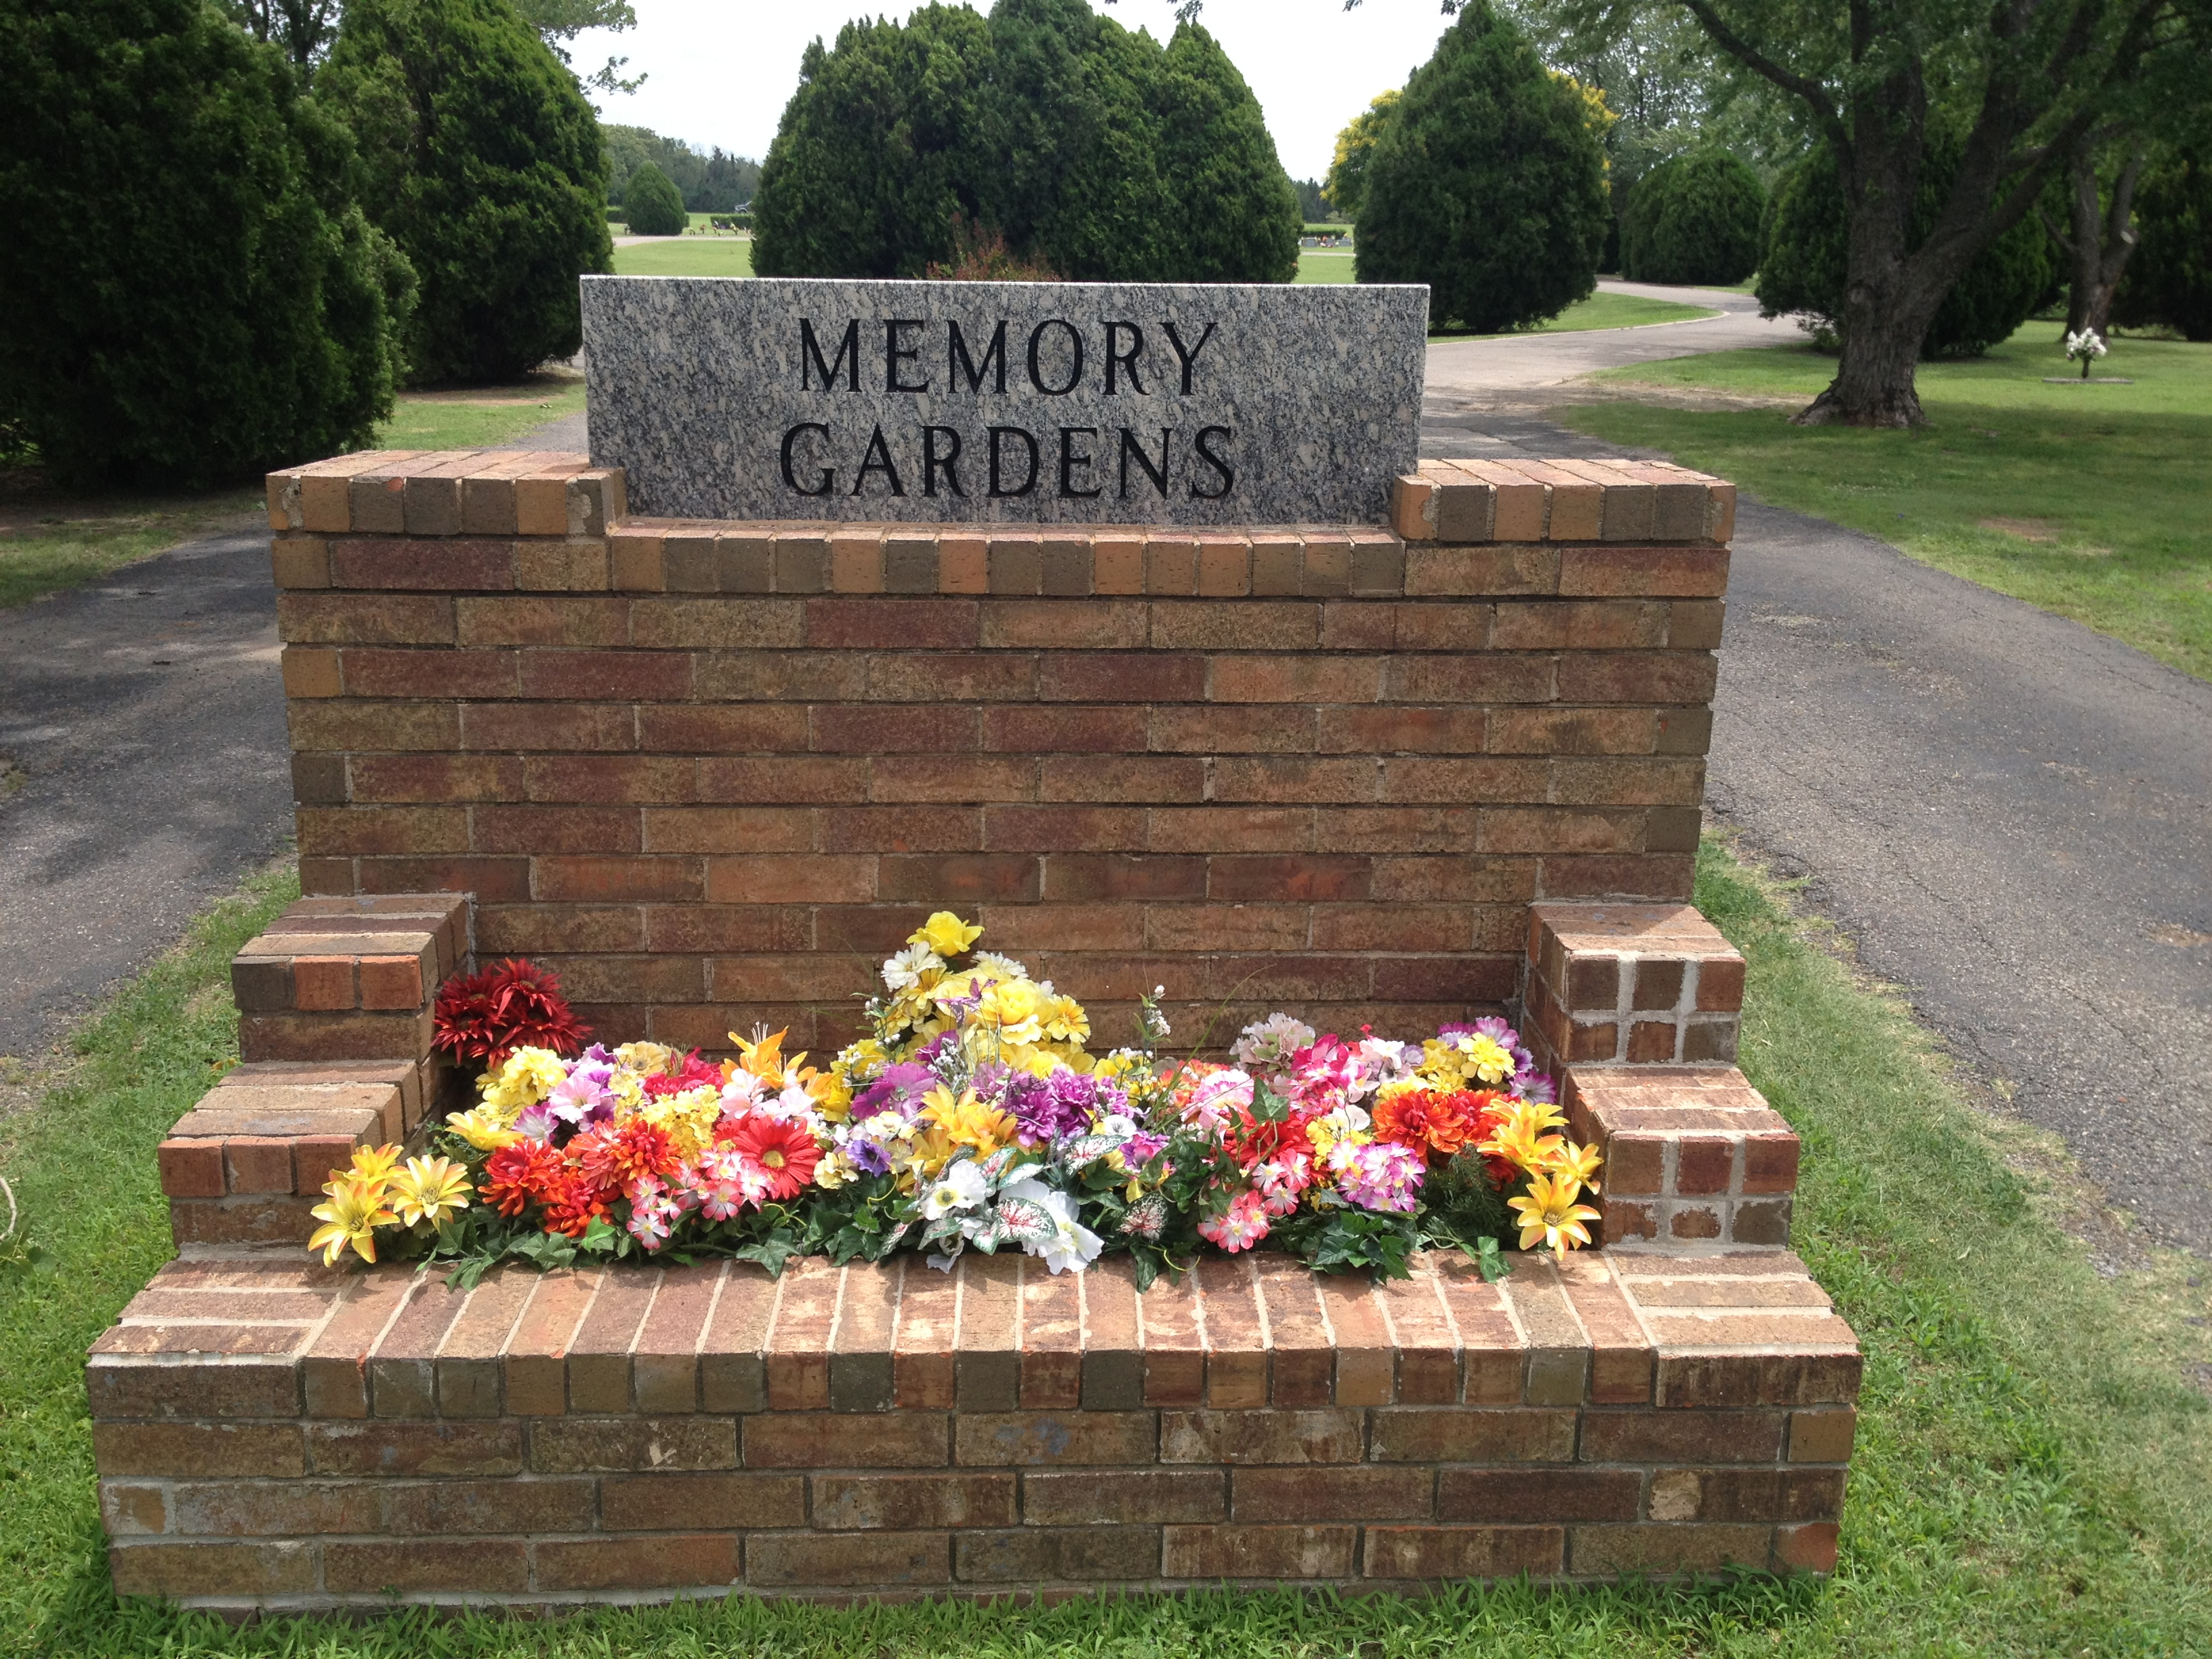 Lawn equipment stolen from cemetery | Guthrie News Page